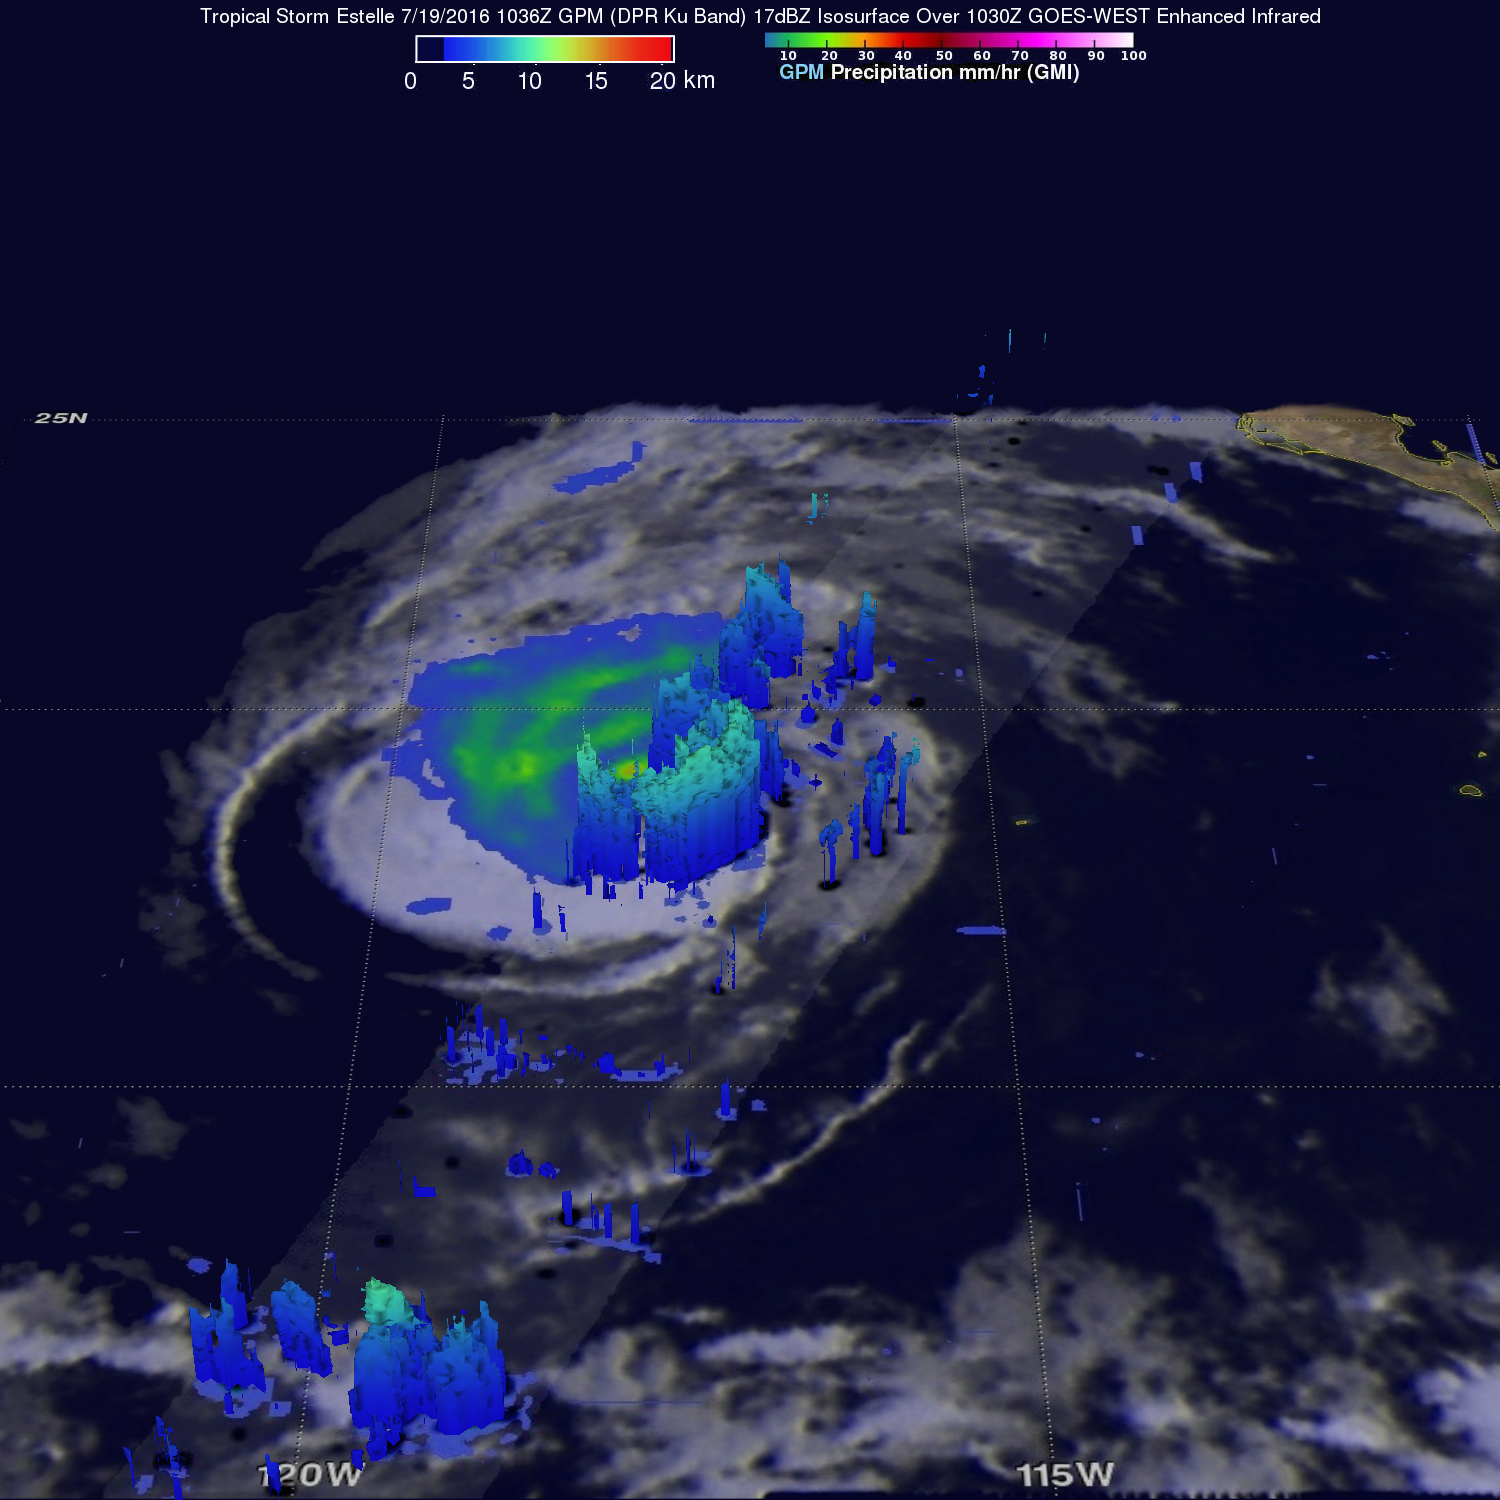 GPM measured heavy rain in Tropical Storm Estelle